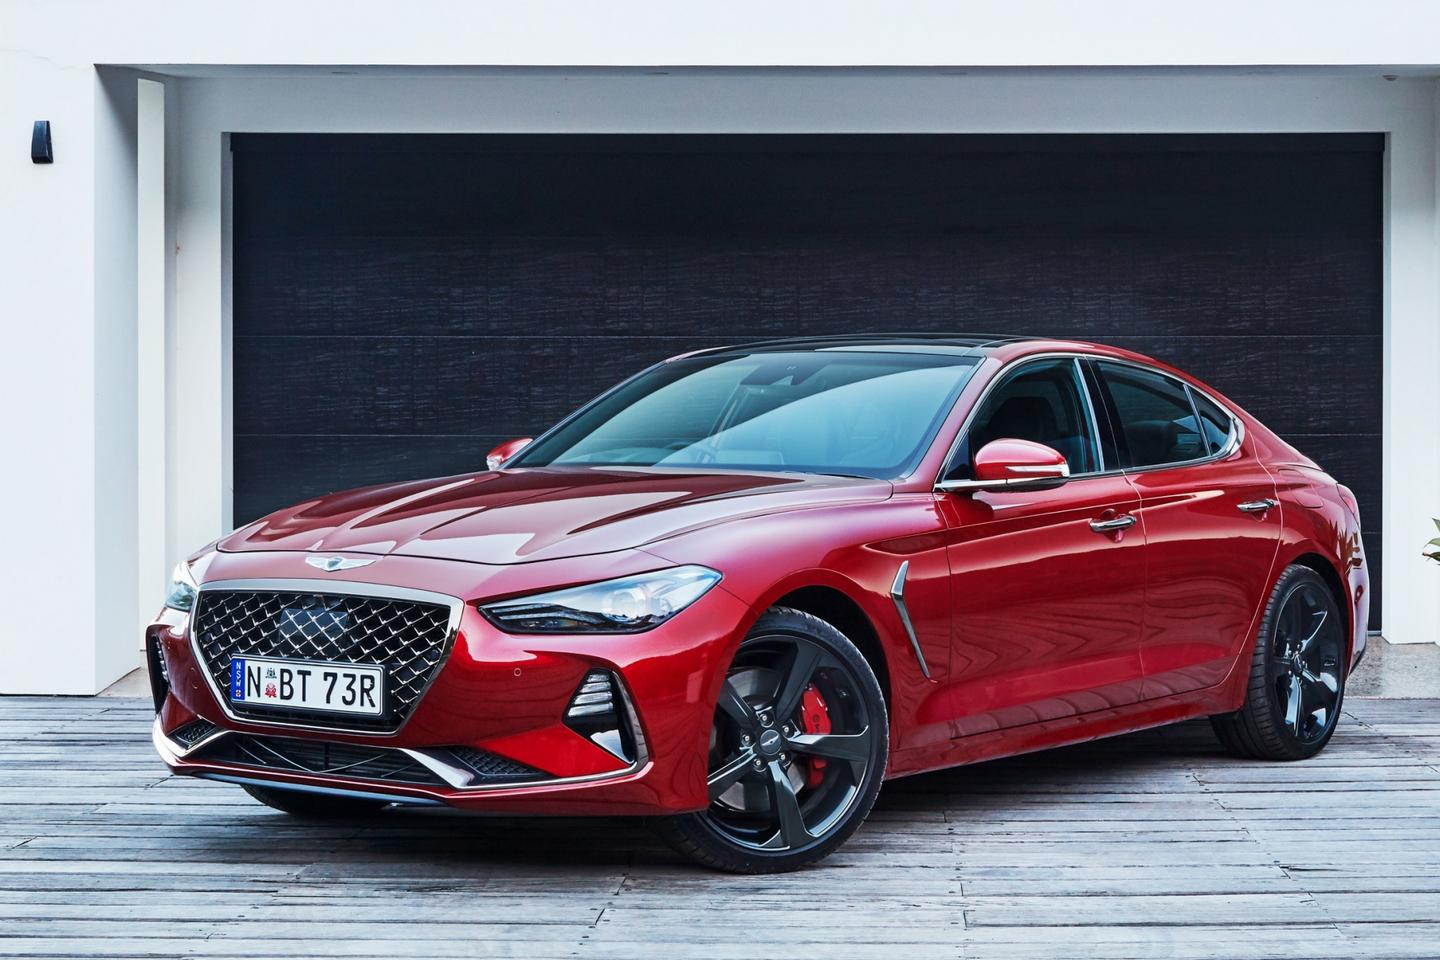 Korean brand Genesis was the top-ranked premium nameplate for the fourth consecutive year and the Genesis G70 sport sedan has now scored best in the luxury segment for the last two years. Given it was only released just over two years ago, its reliability should be a major embarrassment for the established brands.